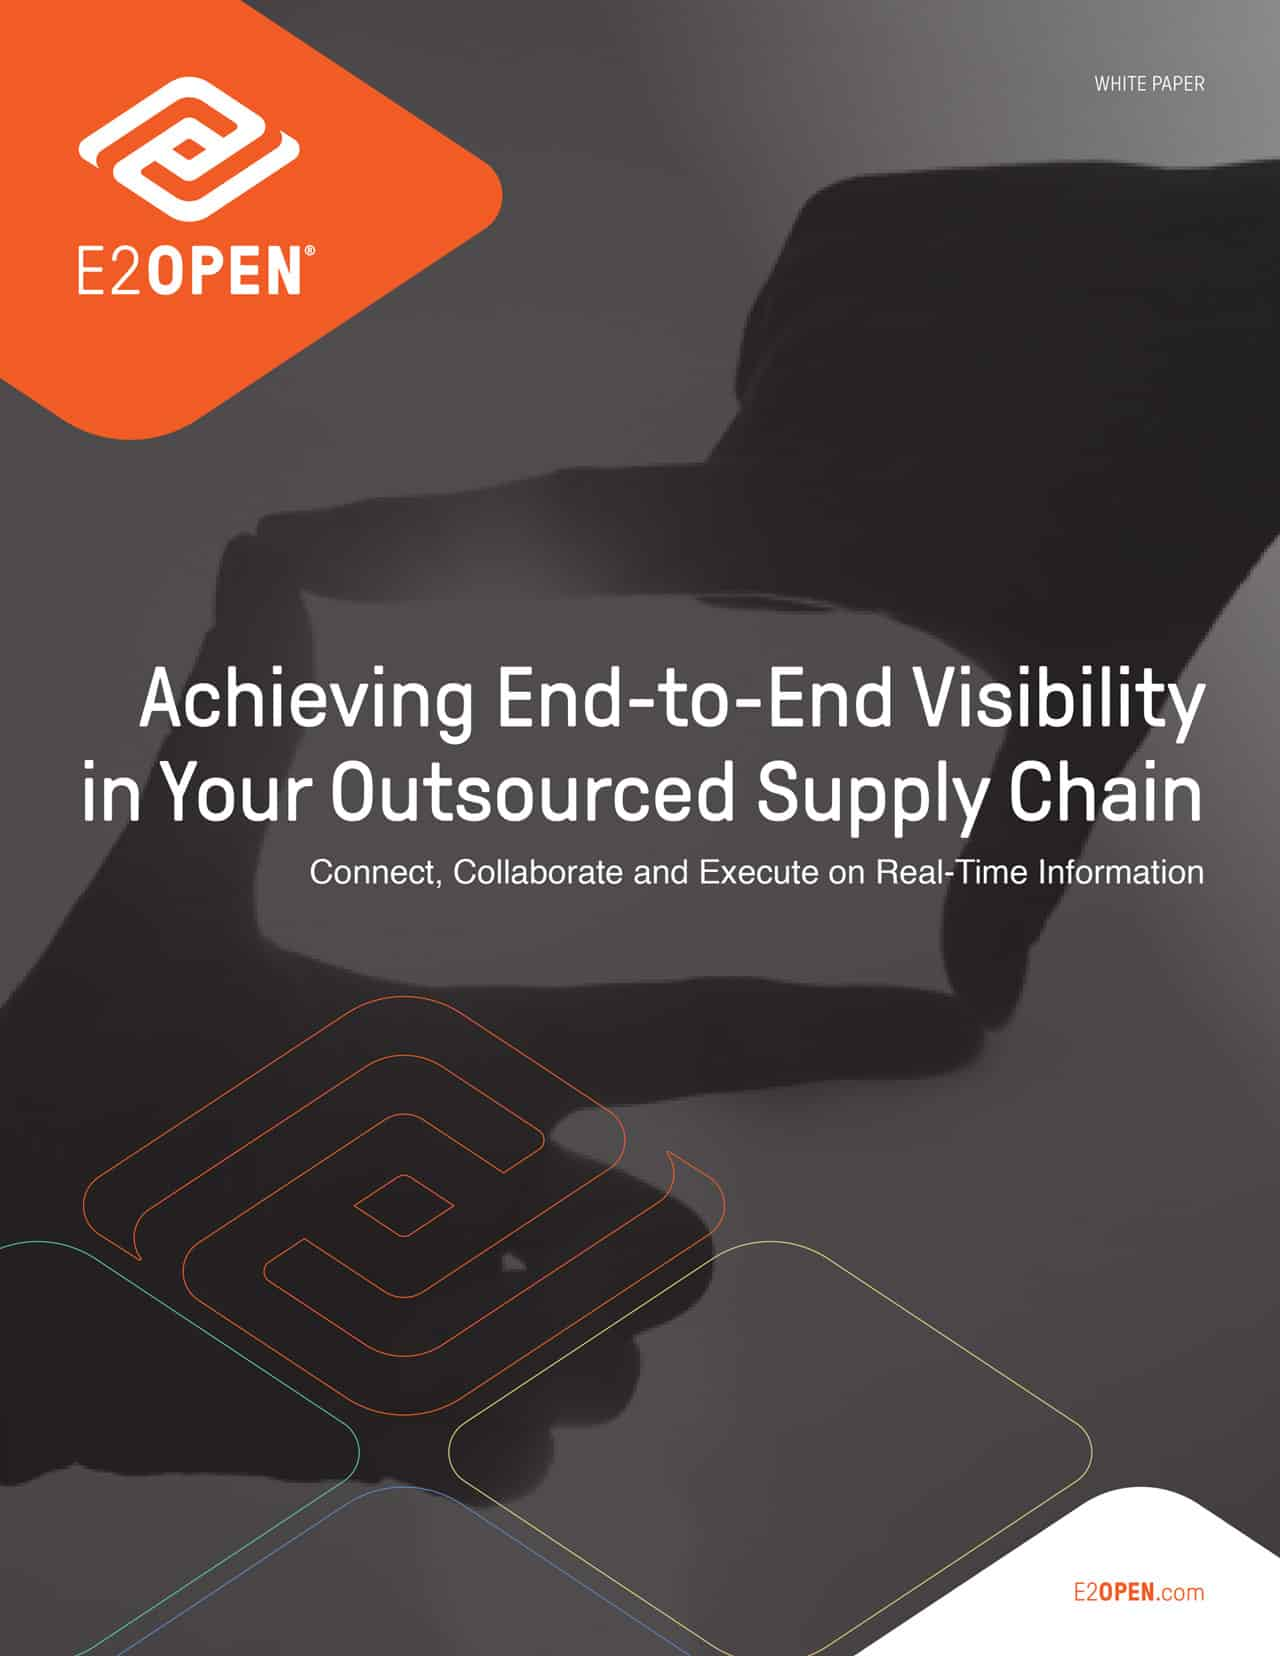 White Paper - Achieving End-to-End Visibility in Your Outsourced Supply Chain